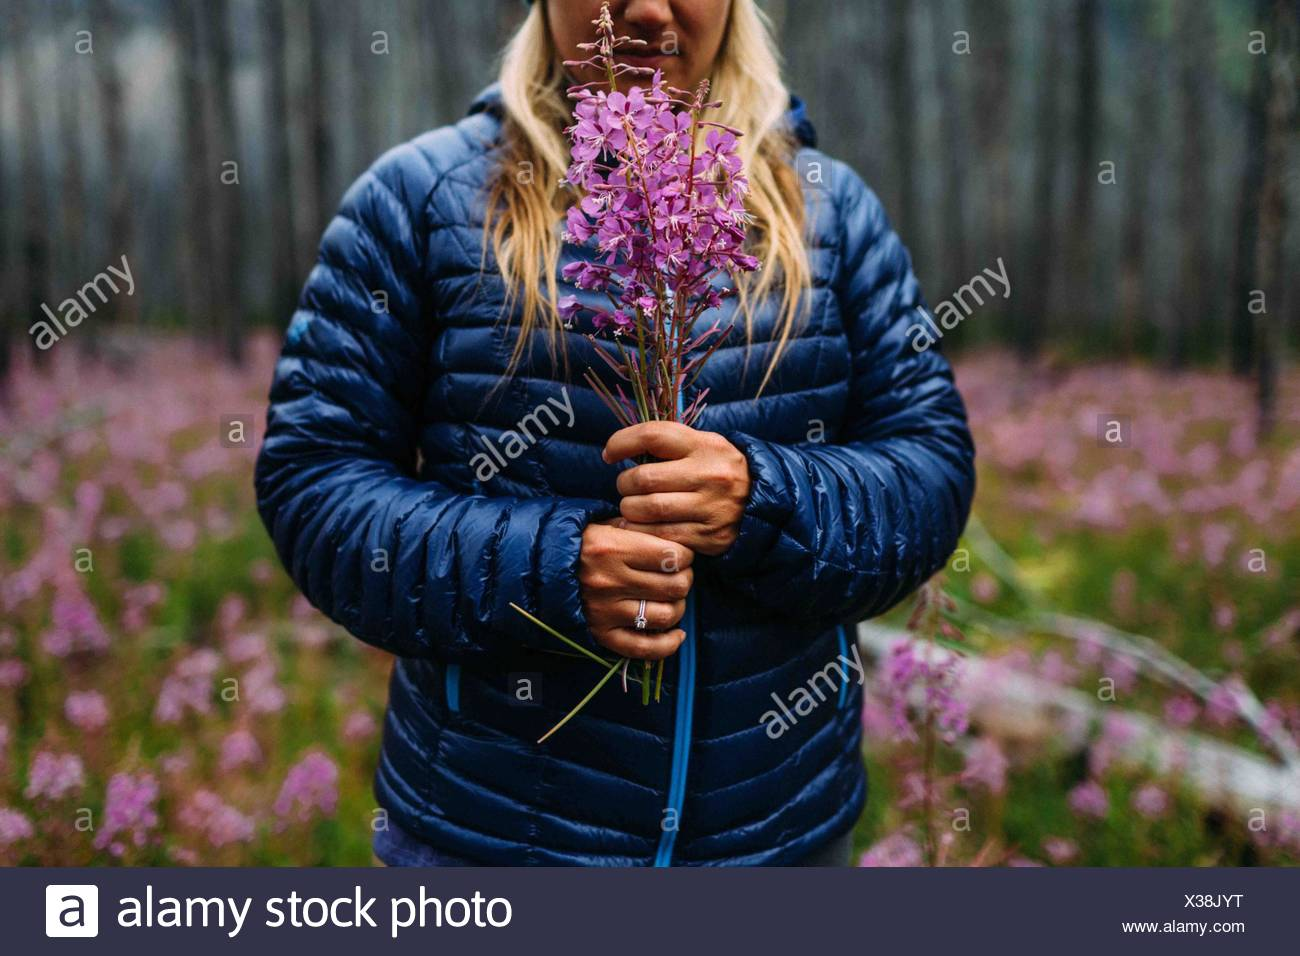 Cropped view of mid adult woman wearing padded coat holding wildflowers, Moraine lake, Banff National Park, Alberta Canada - Stock Image